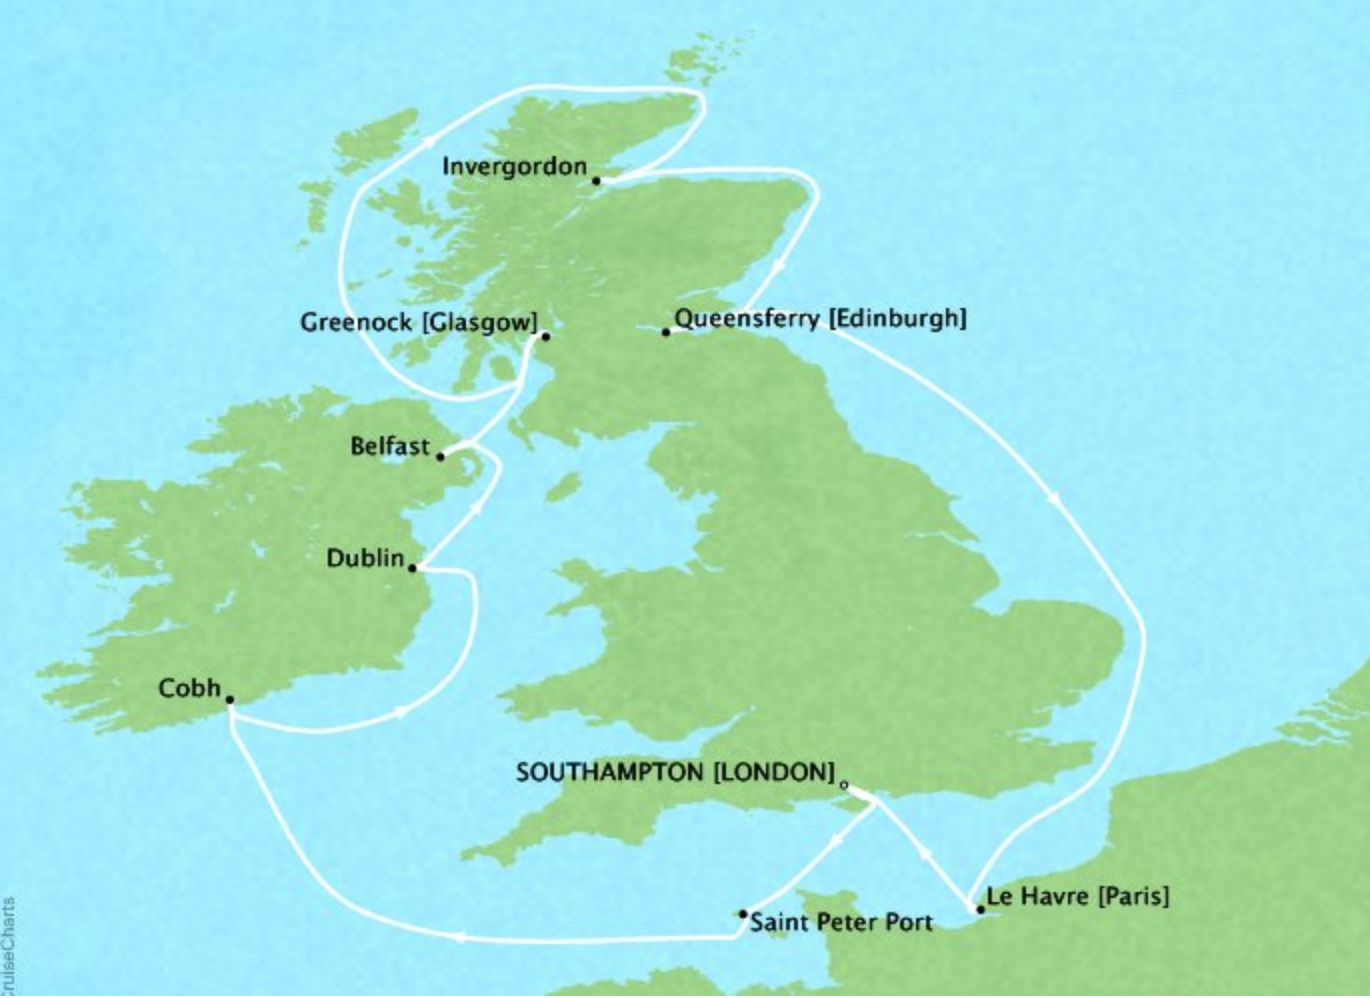 12 day British Isles (with dublin overnight)Crown Princess®Roundtrip London (Southampton) - Itineraries available between May 2019 - August 2019